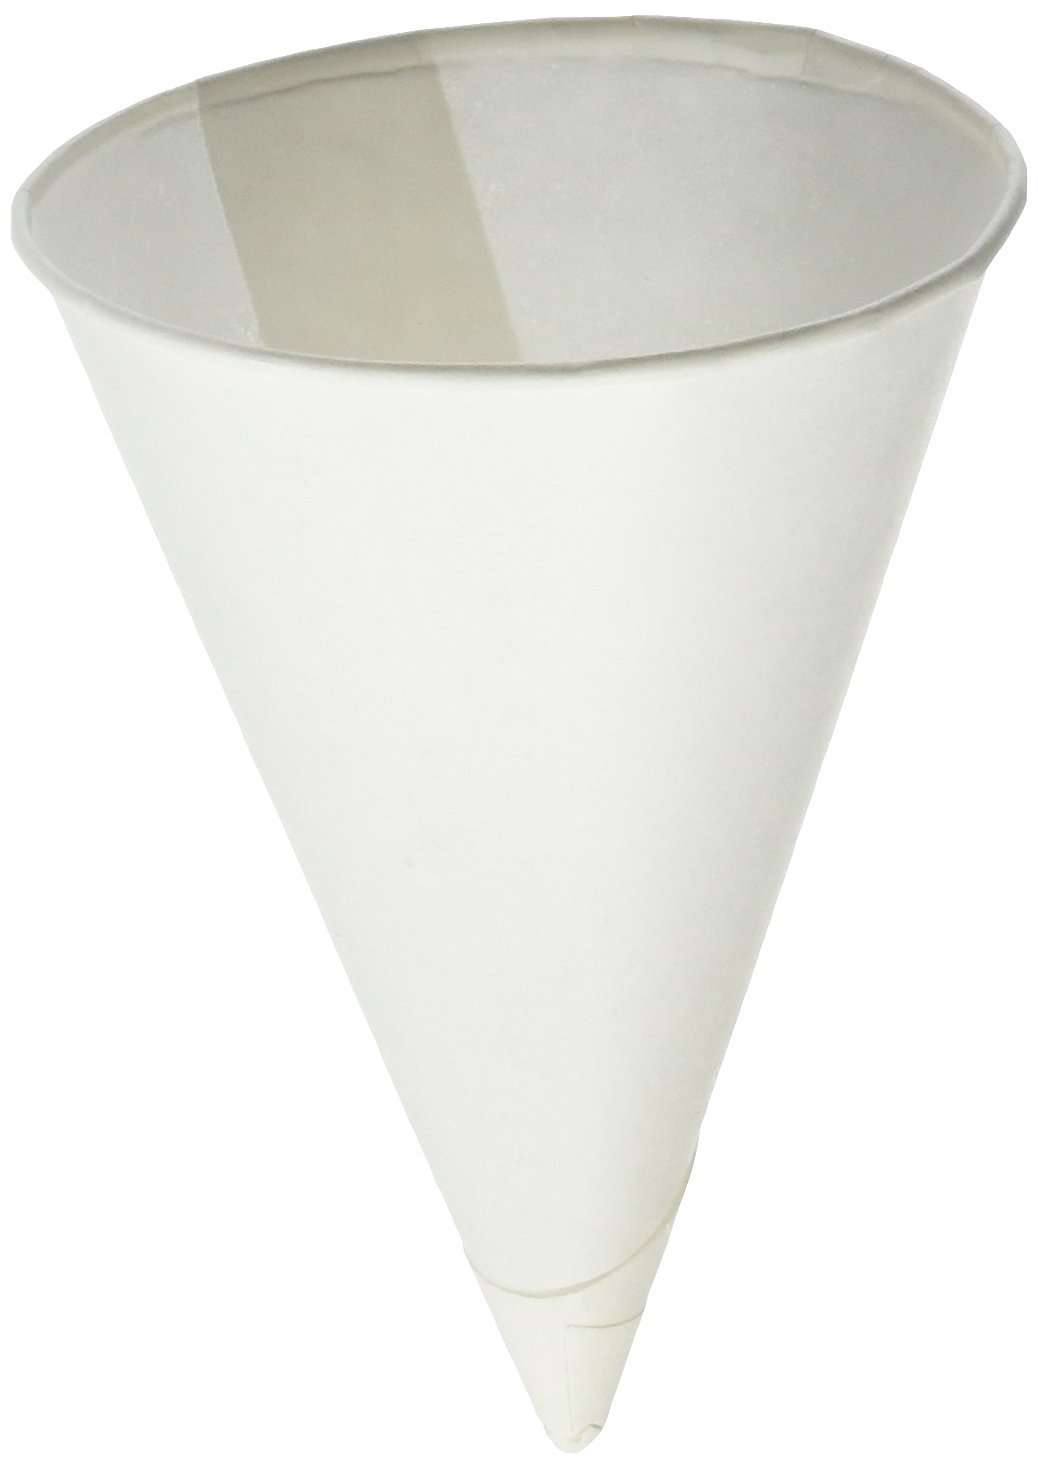 Igloo Cone Cups - cups 4.25 rolled rim contractor 1000 cups/sleeve